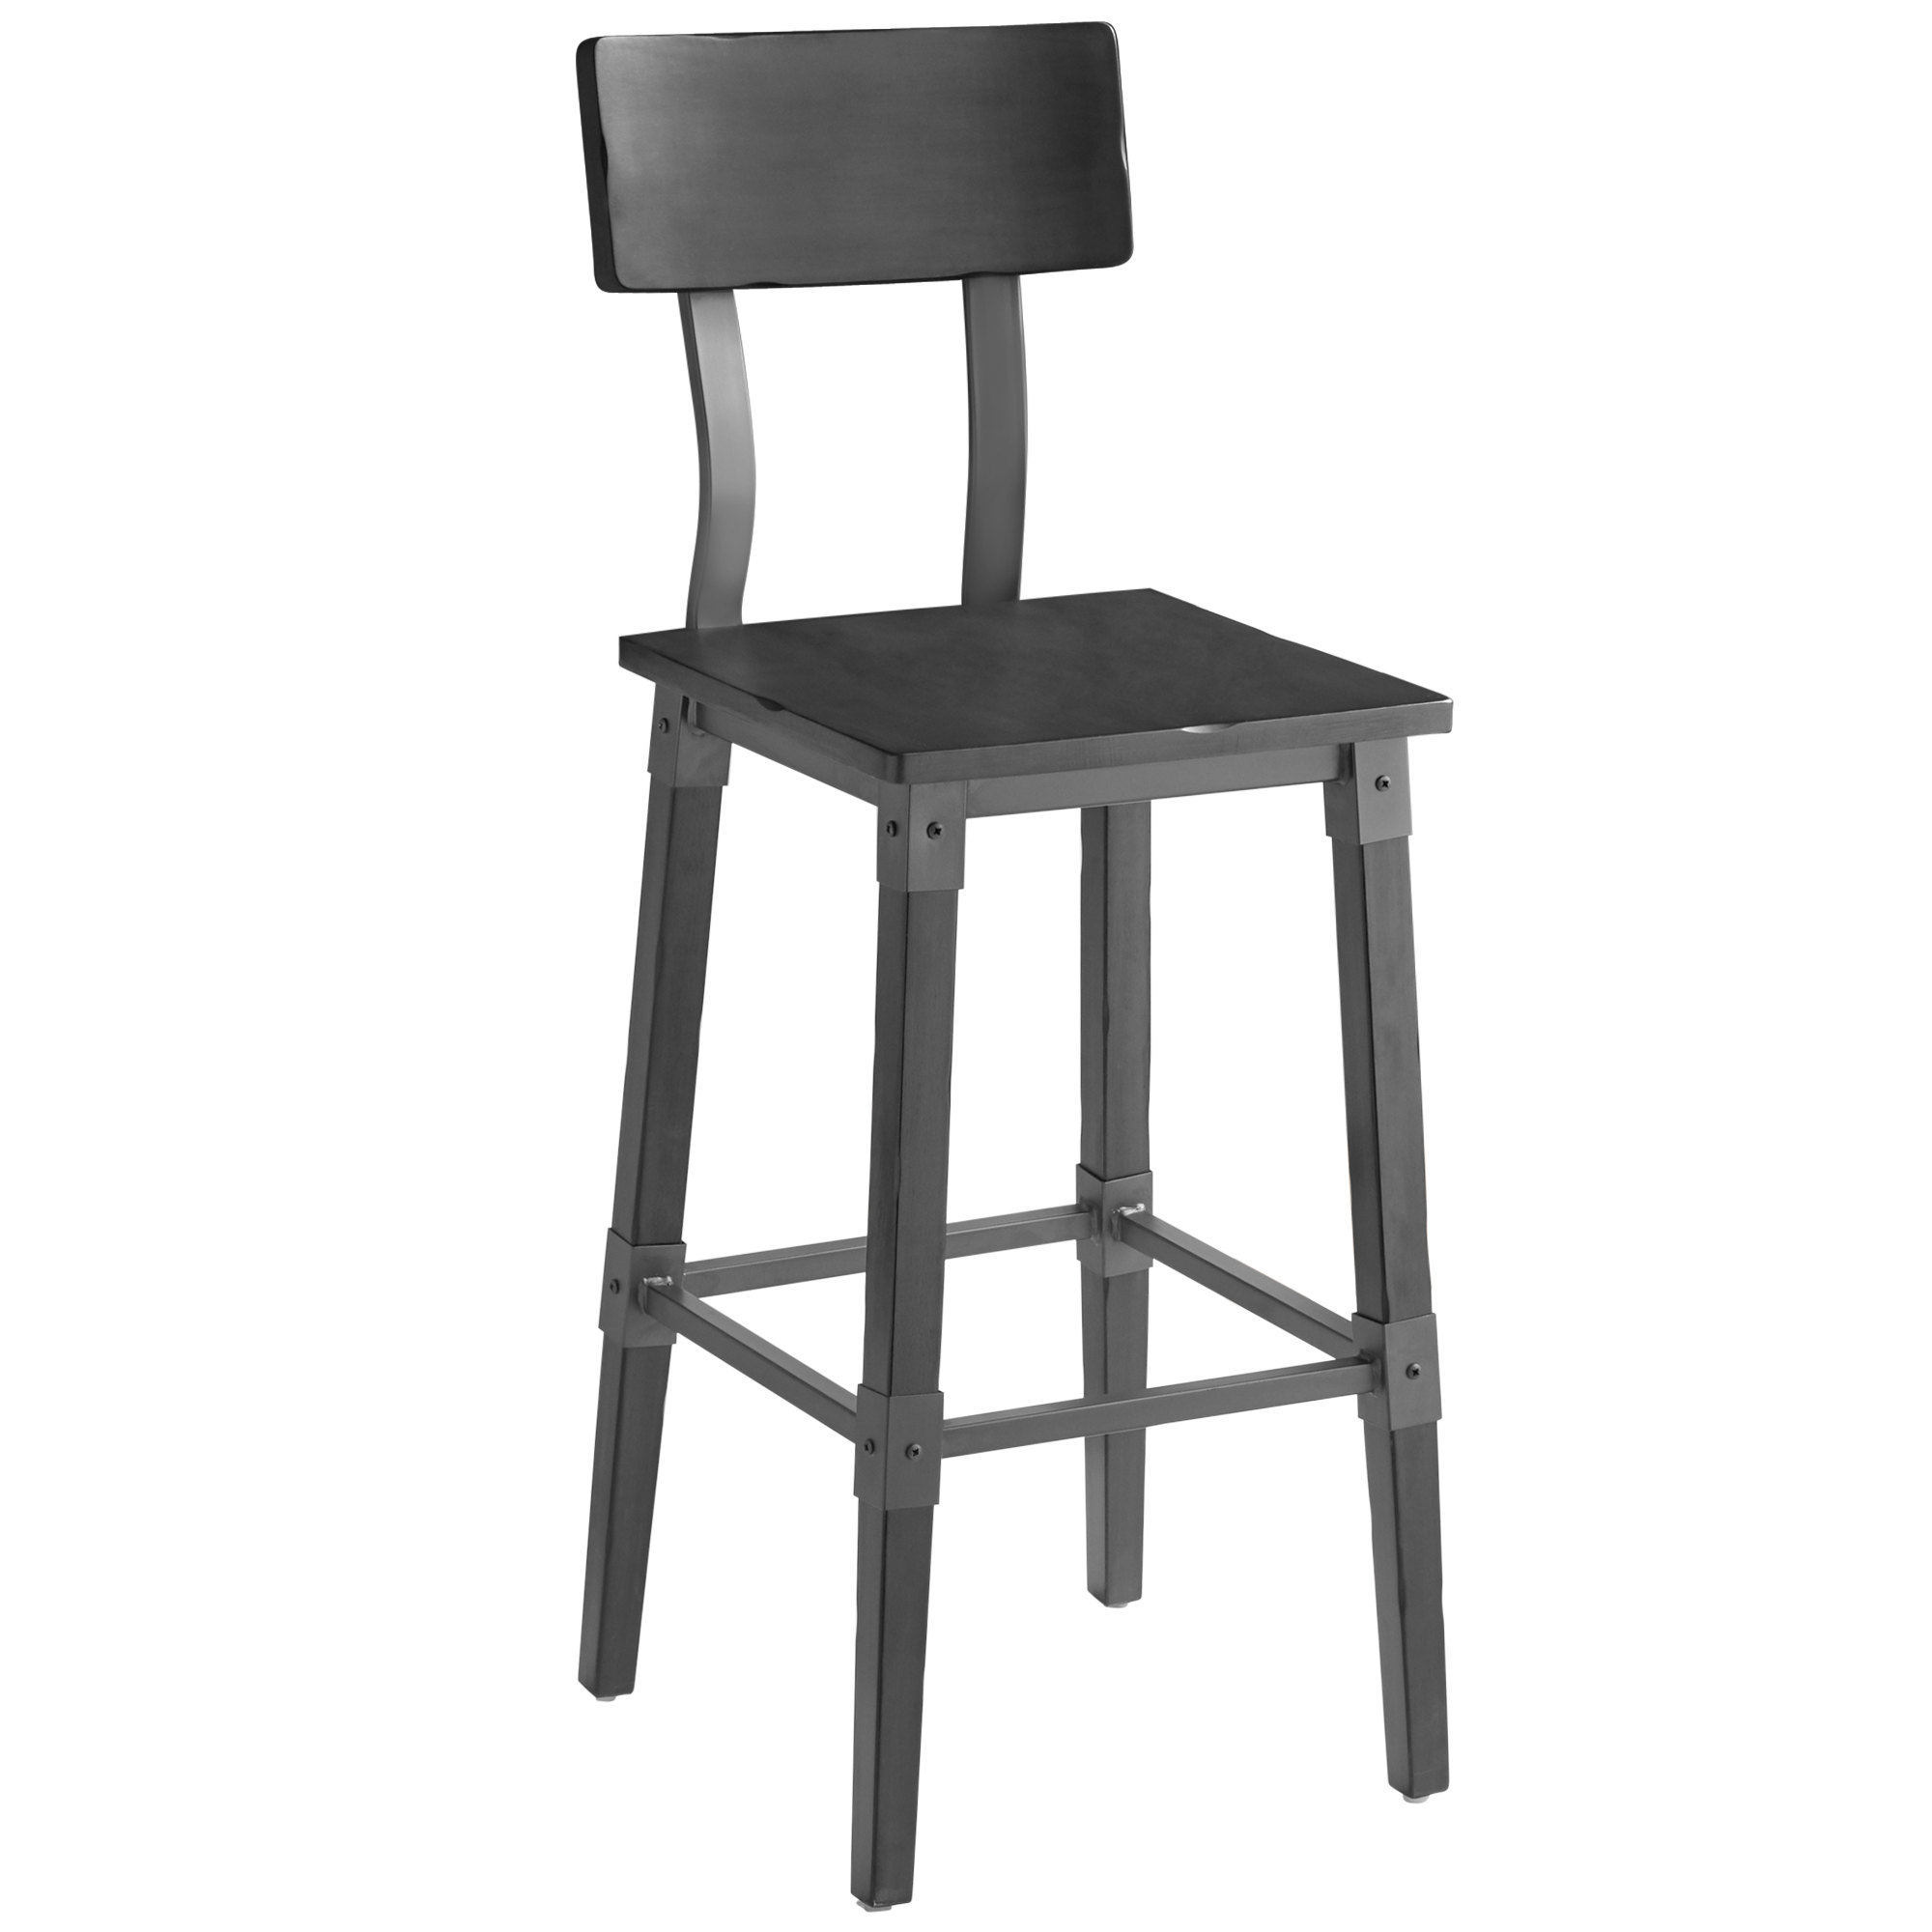 #78 - Rustic Industrial Style Bar Height Chair with Slate Gray Finish